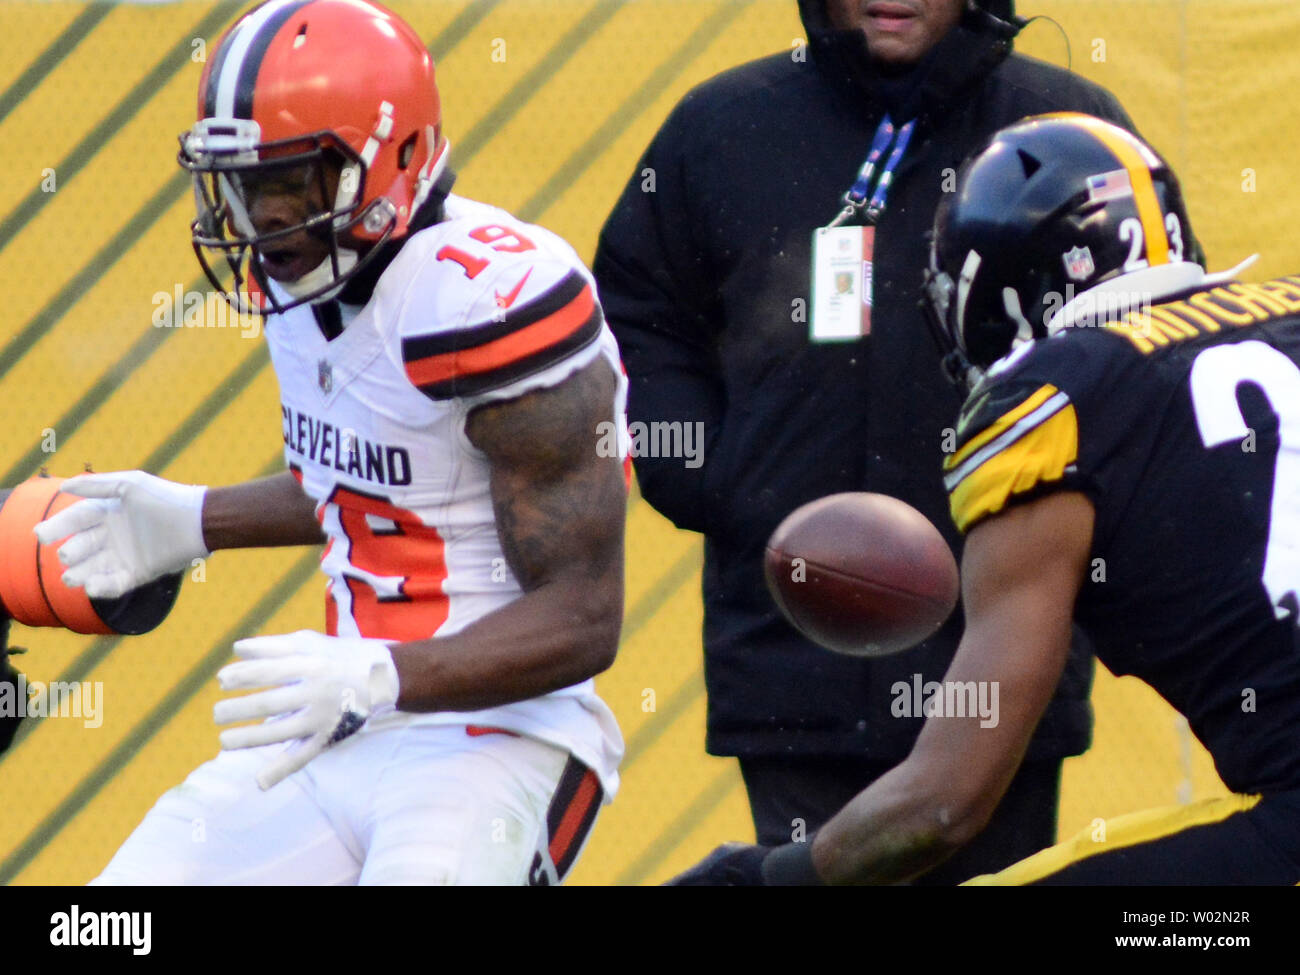 Cleveland Browns wide receiver Corey Coleman (19) misses a fourth down pass   at the 10 yard line, giving the Pittsburgh Steelers the 28-24 win at Heinz Field in Pittsburgh  on December 31, 2017. Cleveland finished the season with no wins, going 0-16.  Photo by Archie Carpenter/UPI Stock Photo